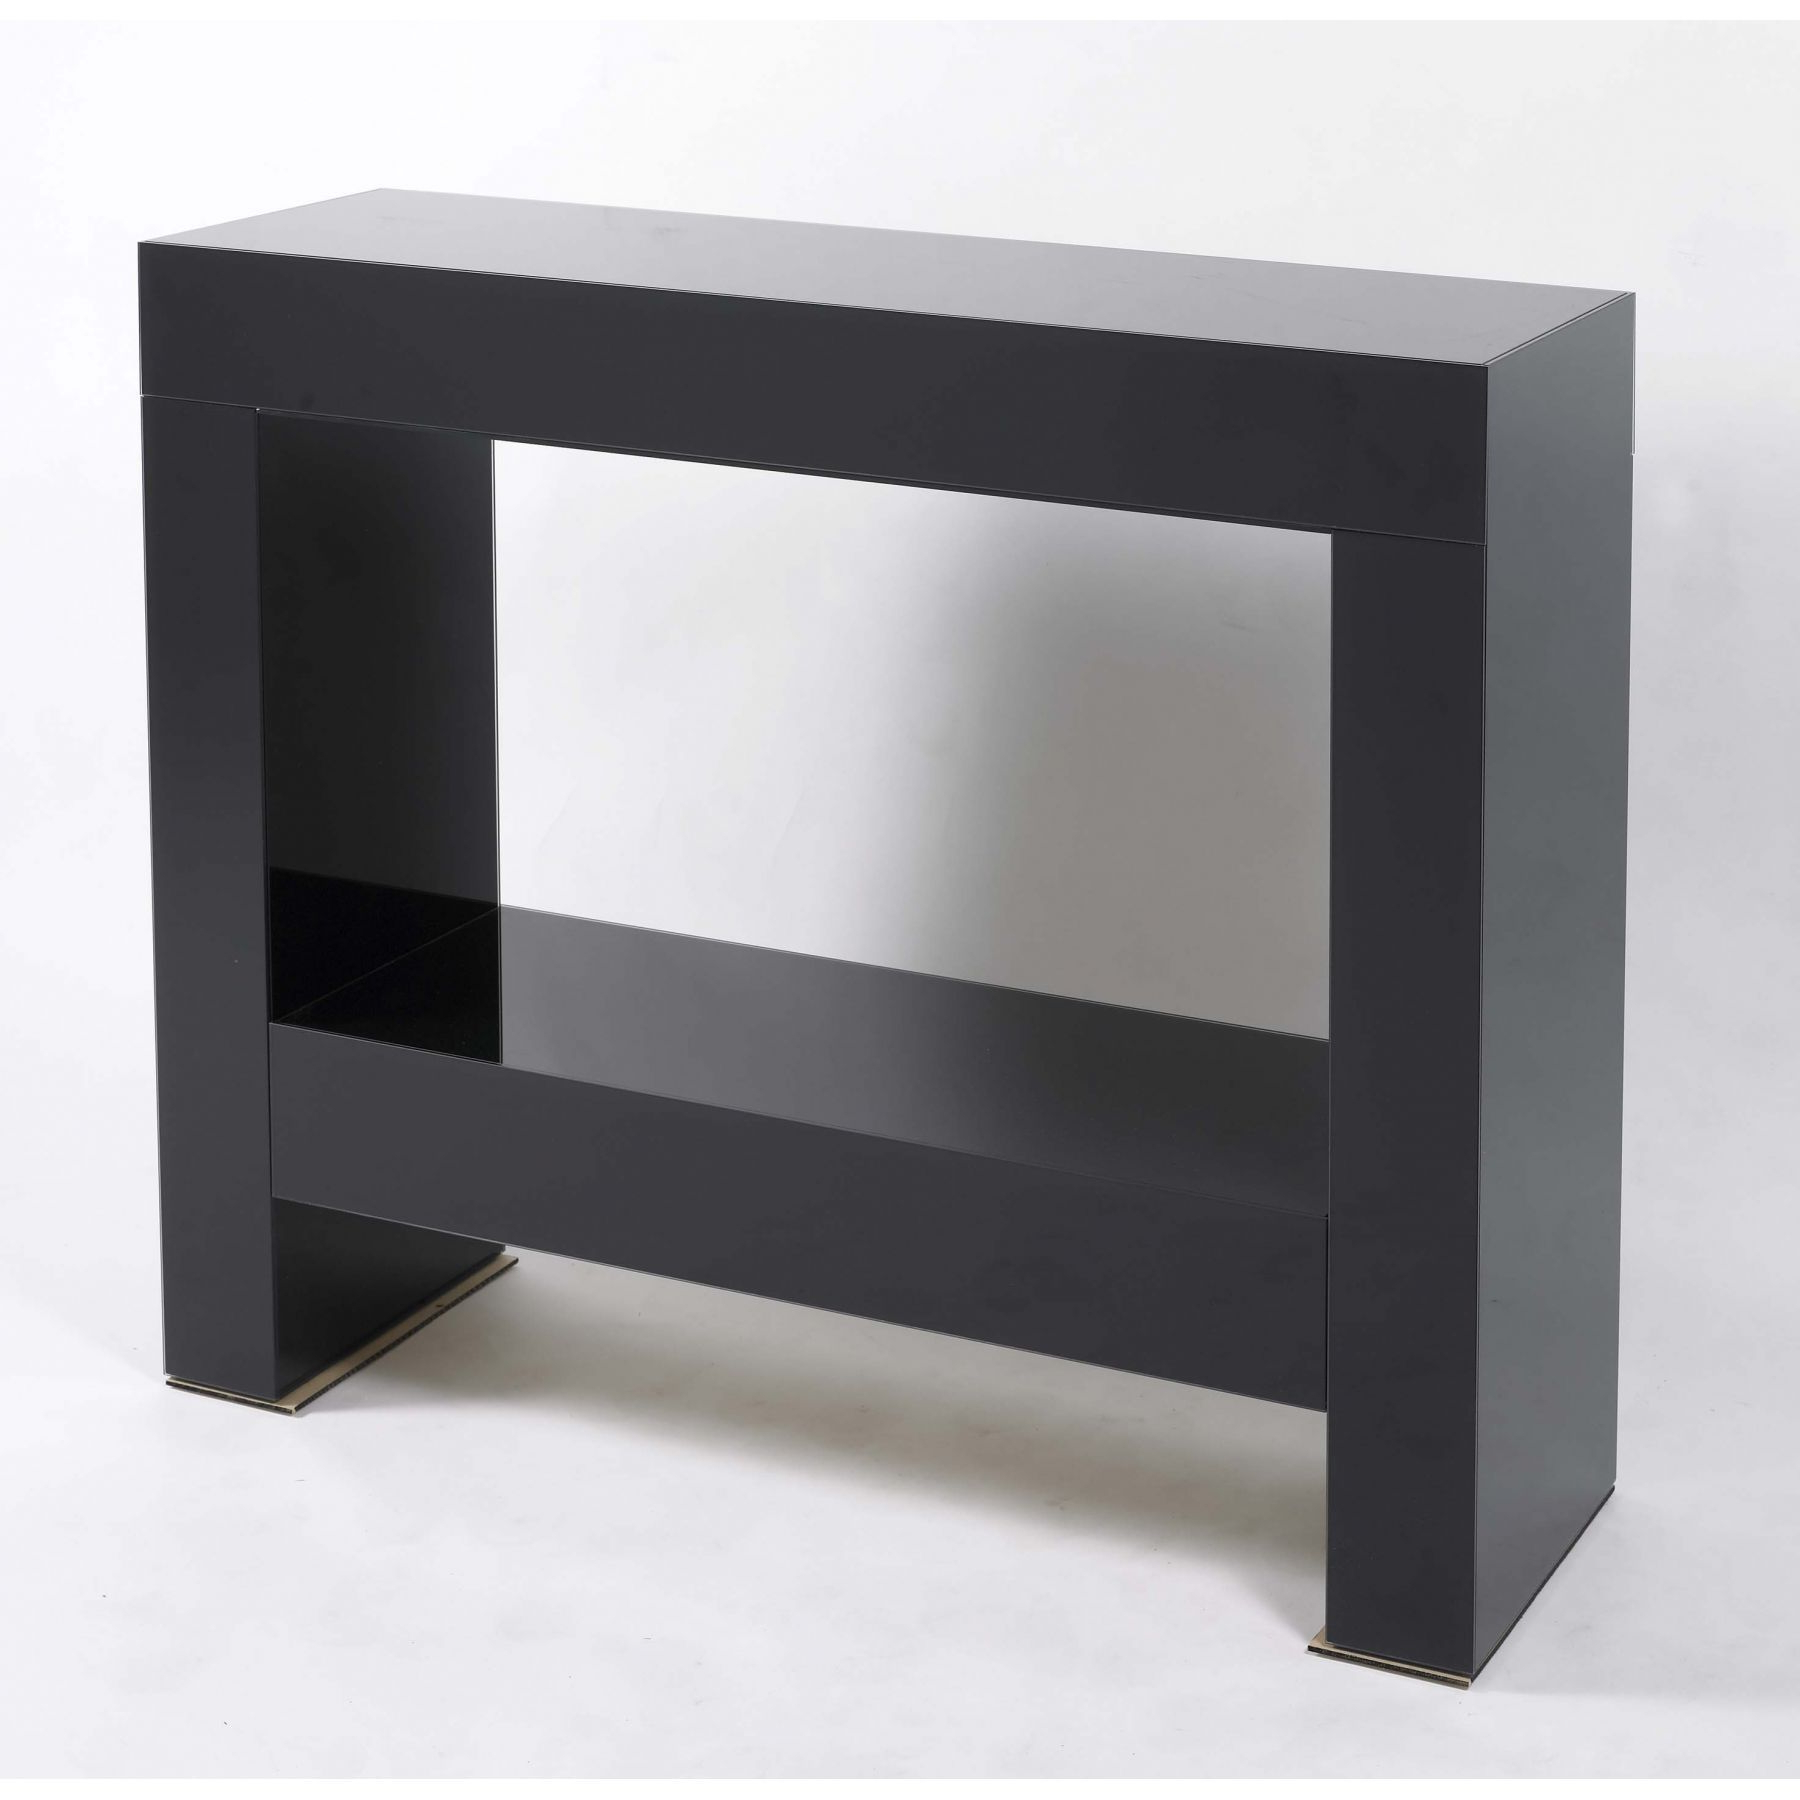 Parsons Clear Glass Top & Dark Steel Base 48x16 Console Tables With Regard To Popular Contemporary Black Parsons Console Table With Glossy Finish (View 9 of 20)